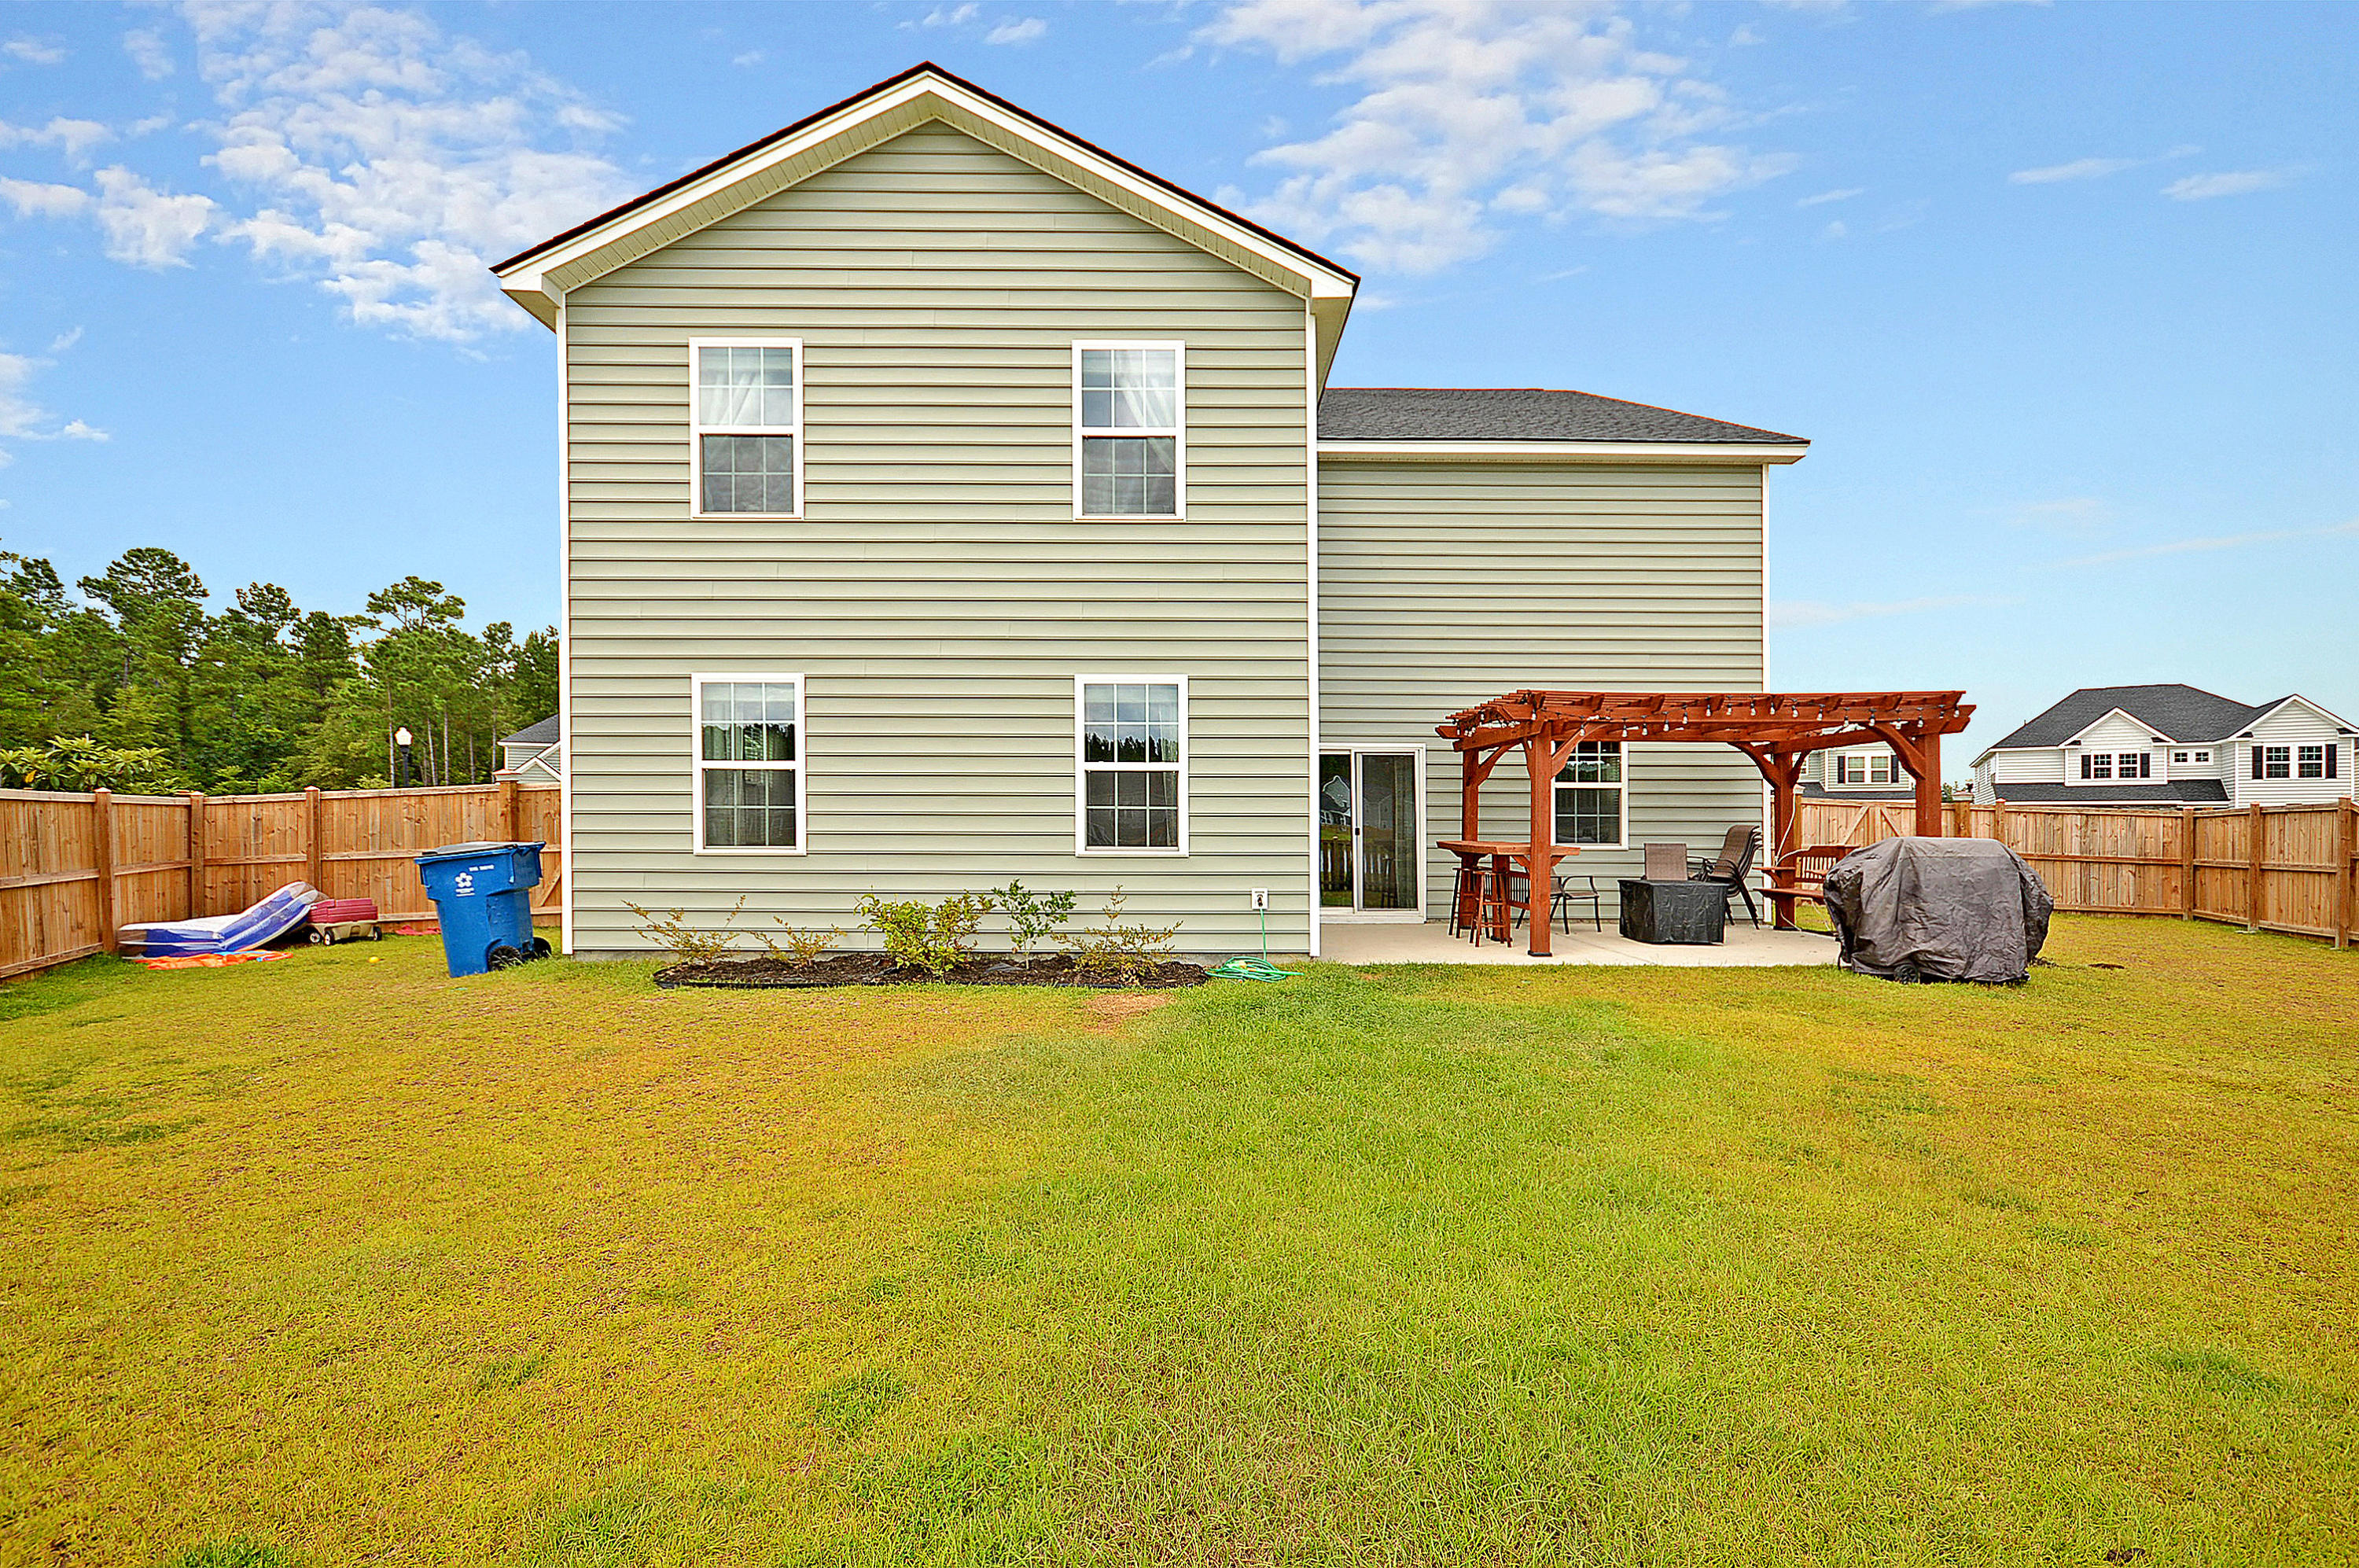 313 Witch Hazel Street Summerville, Sc 29486